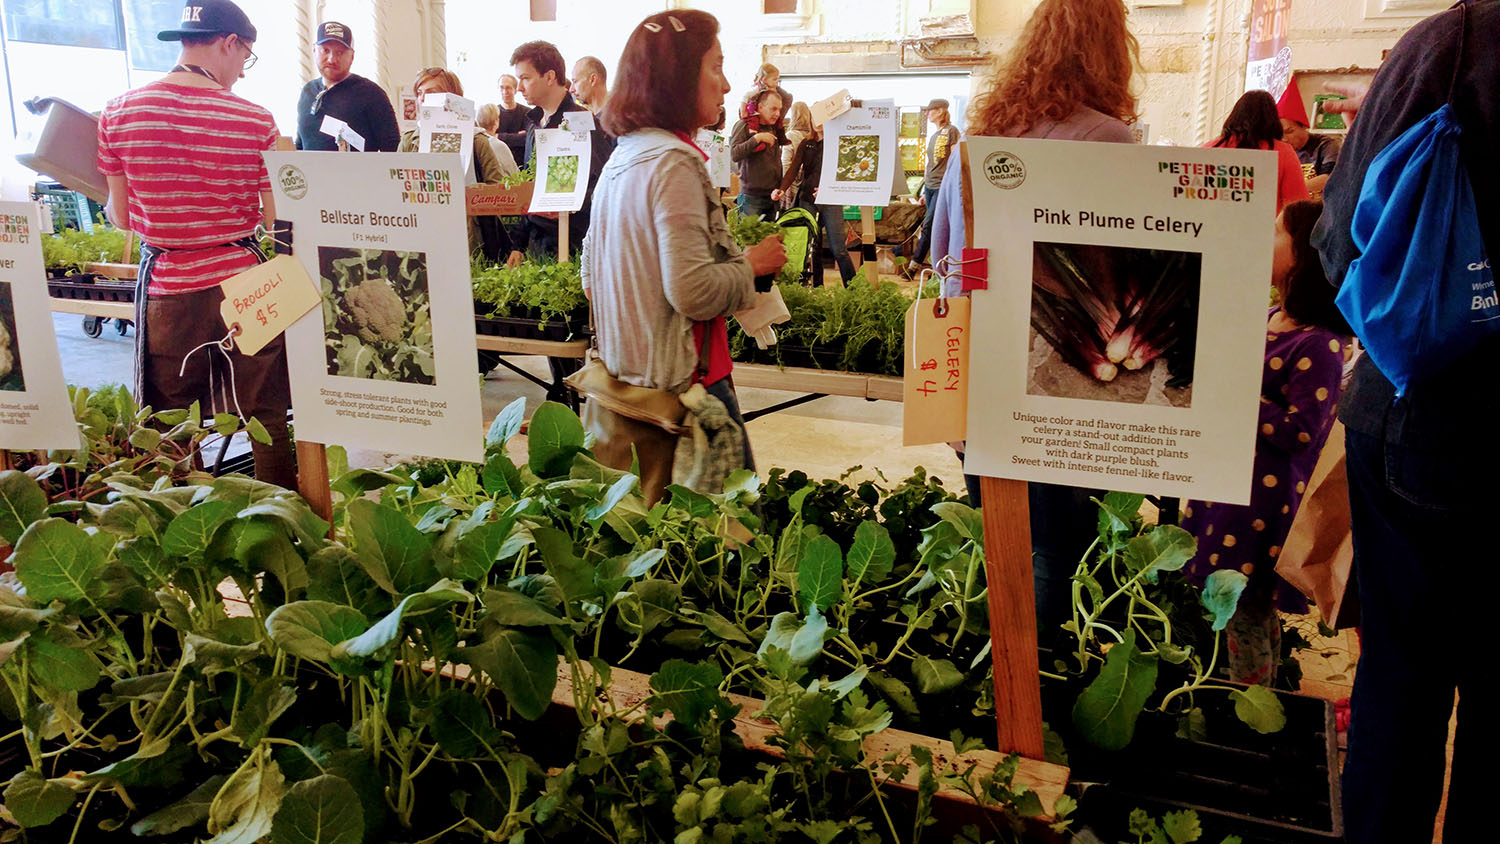 In April And May, Peterson Garden Project Is Having Their Seventh Annual  Plant Sale Fundraiser. This Year They Will Have All Organic Plants Grown By  ...